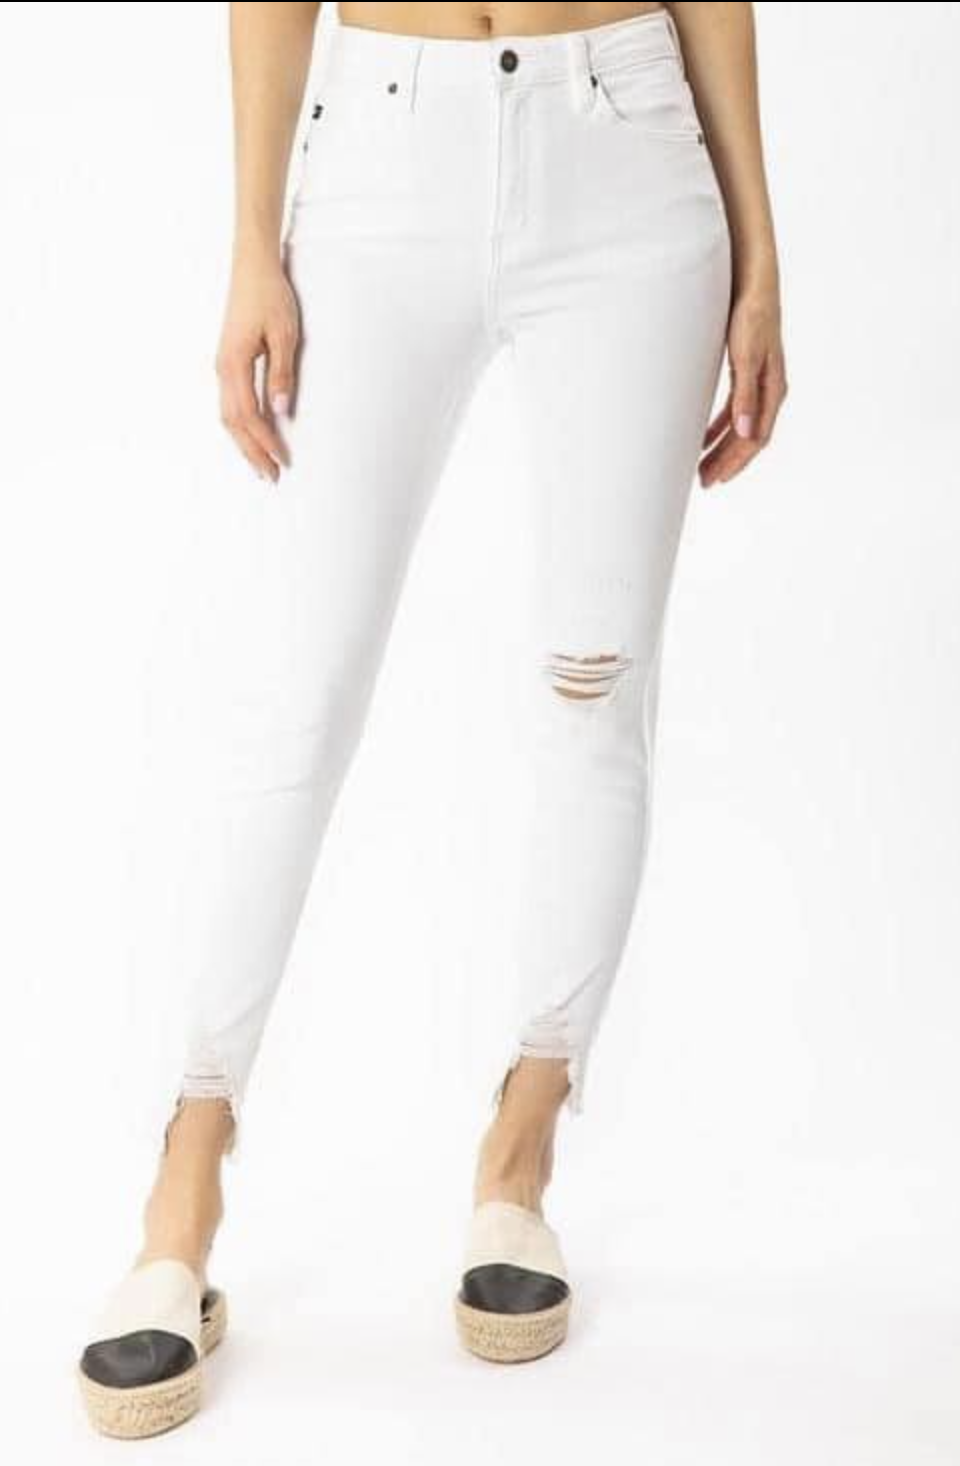 White KanCan jeans (distressed)